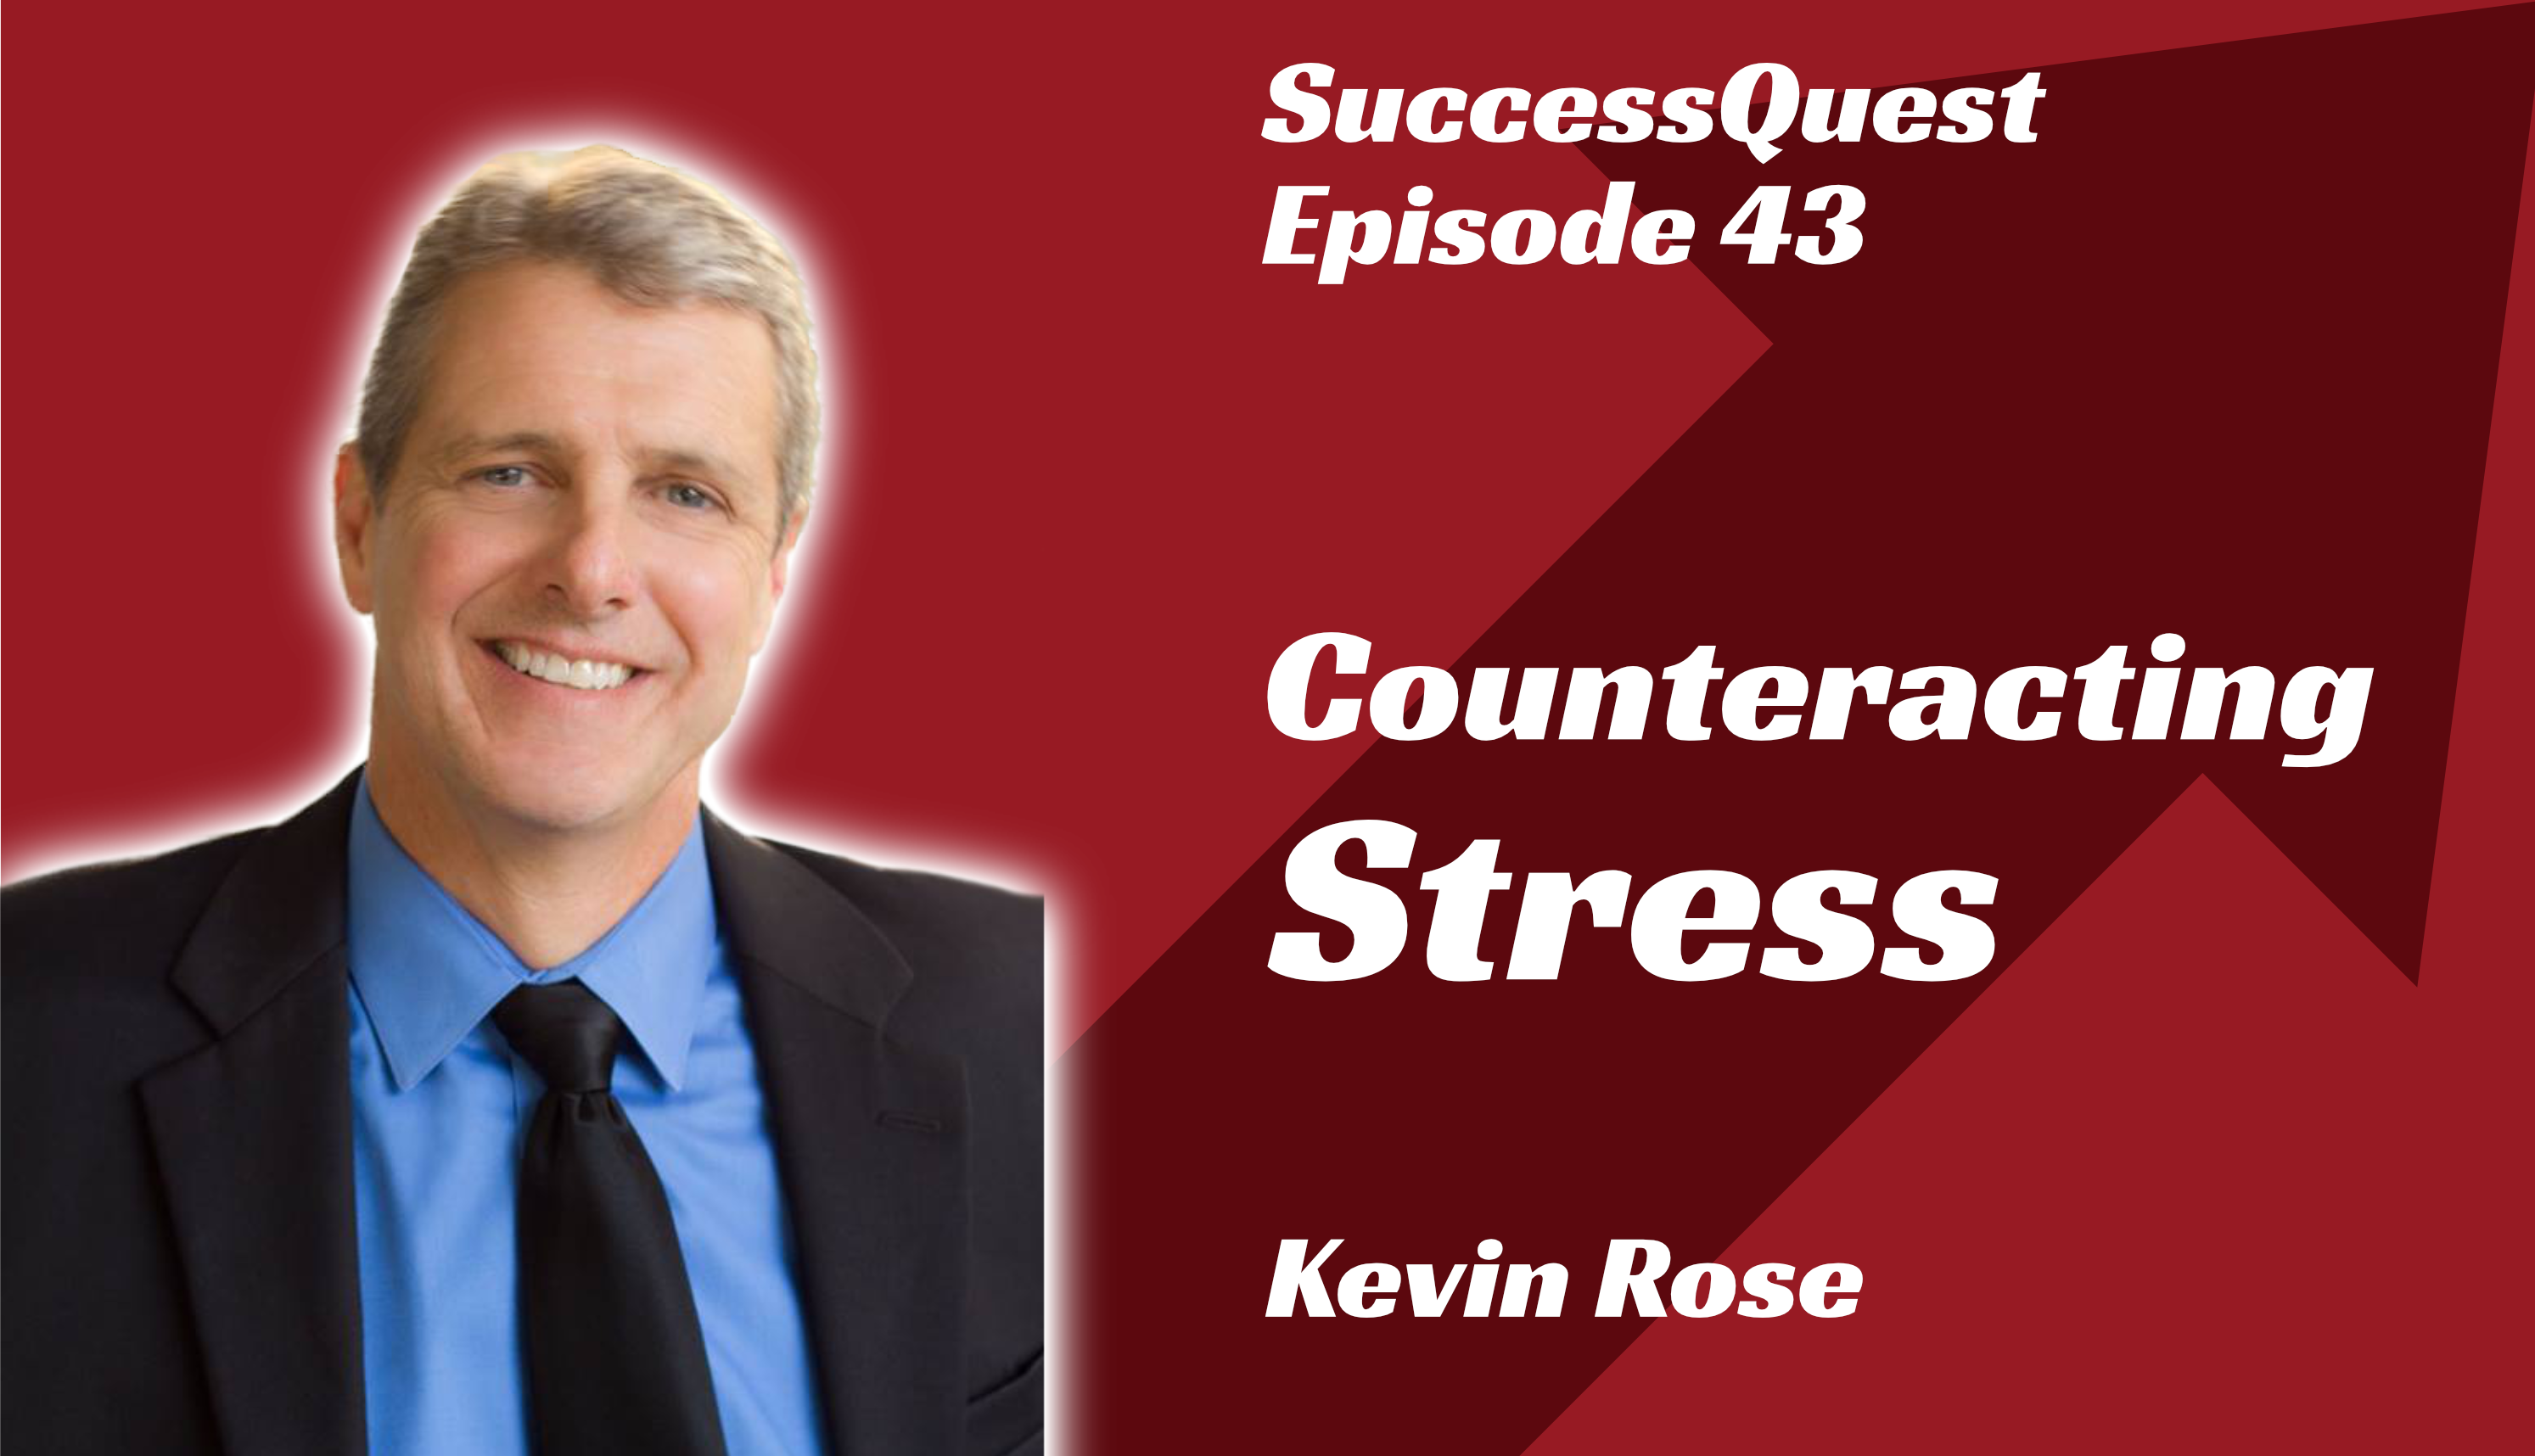 Kevin Rose Counteracting Stress SuccessQuest